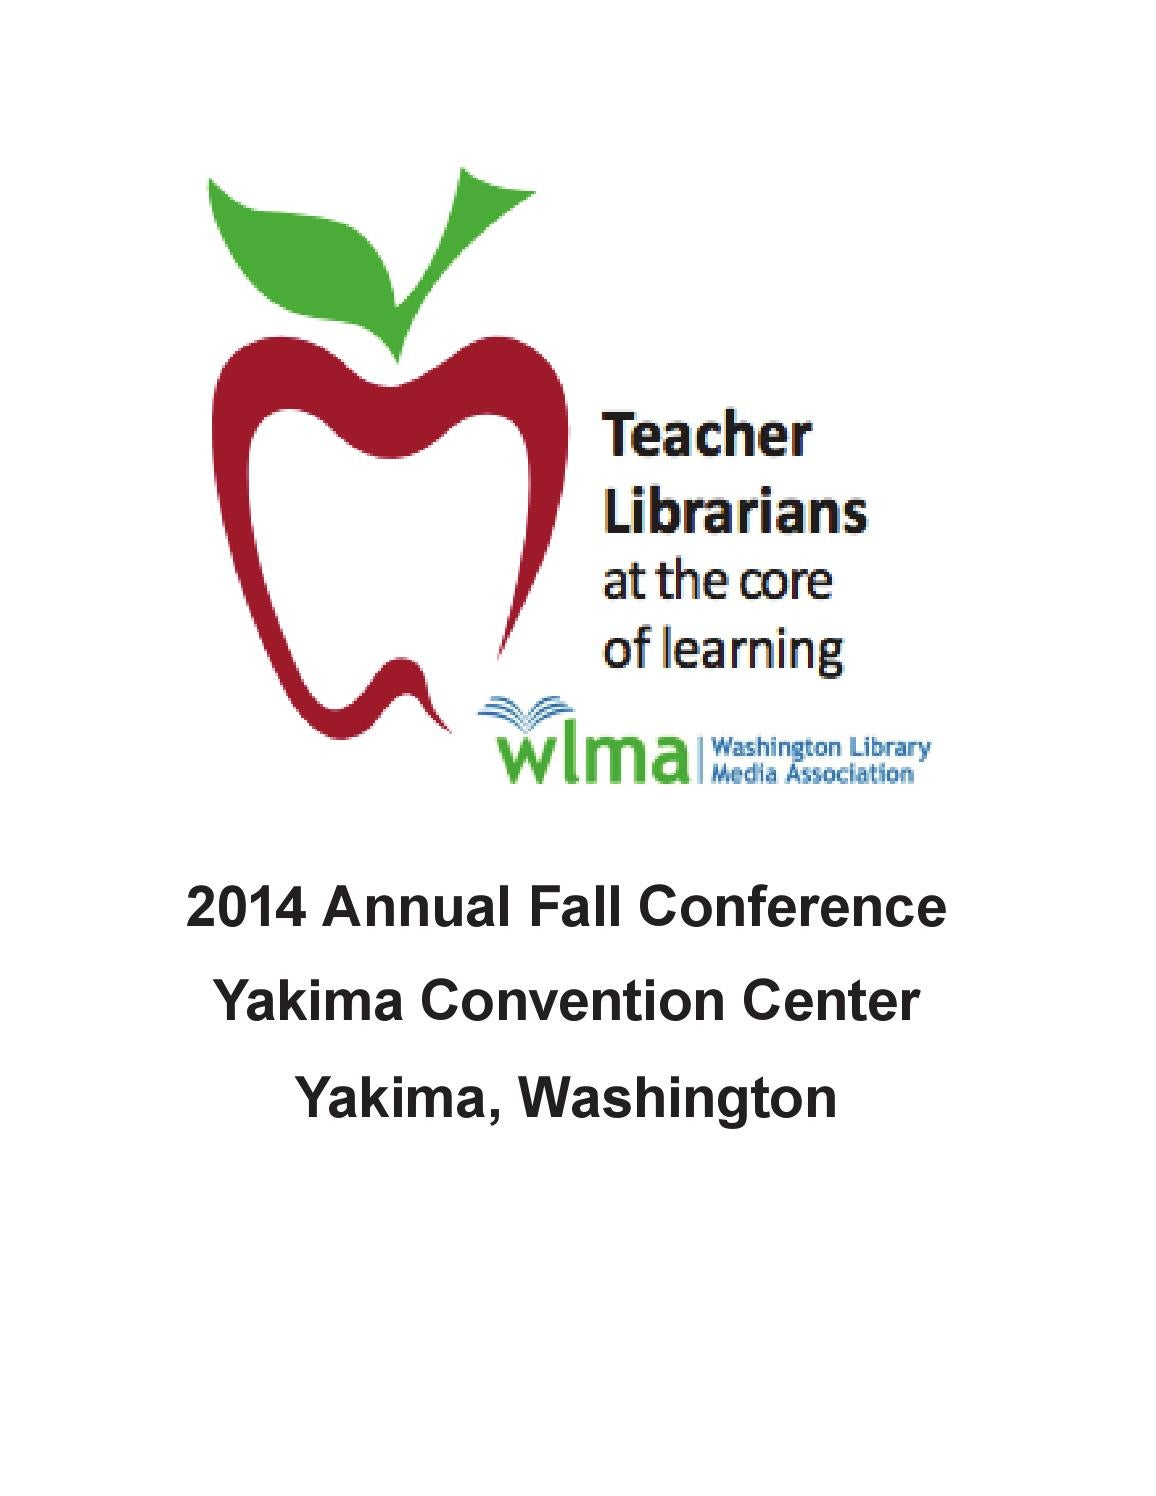 Wlma medium 2014 conference edition by wlmamedium issuu fandeluxe Image collections